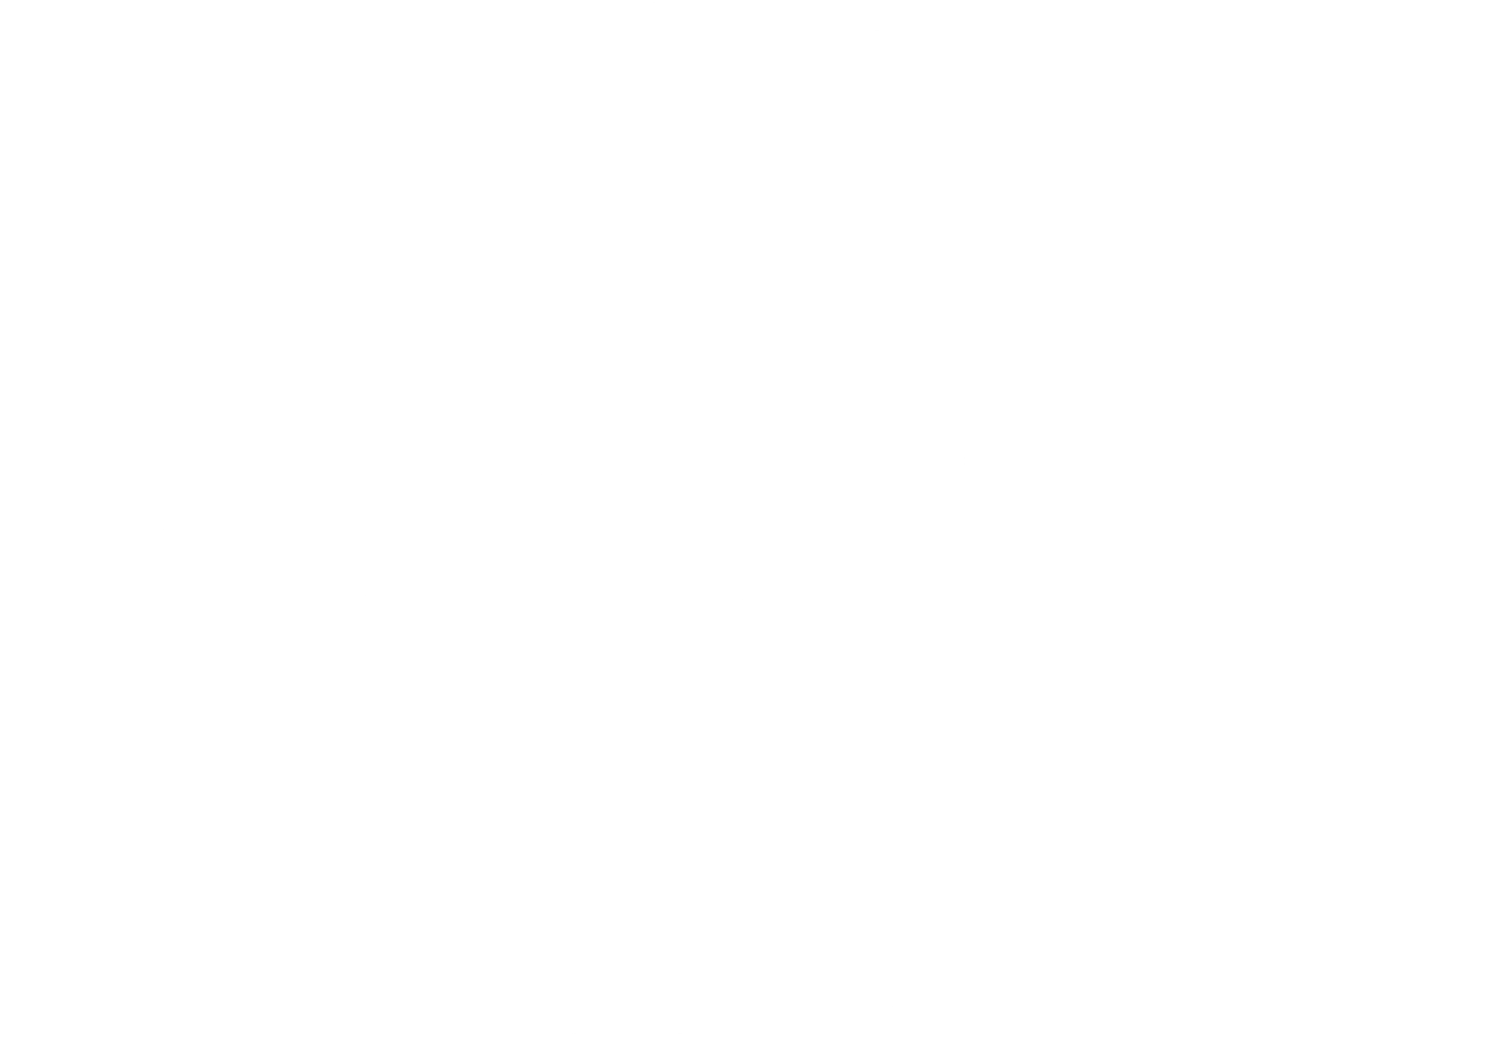 Bearded Man Ireland